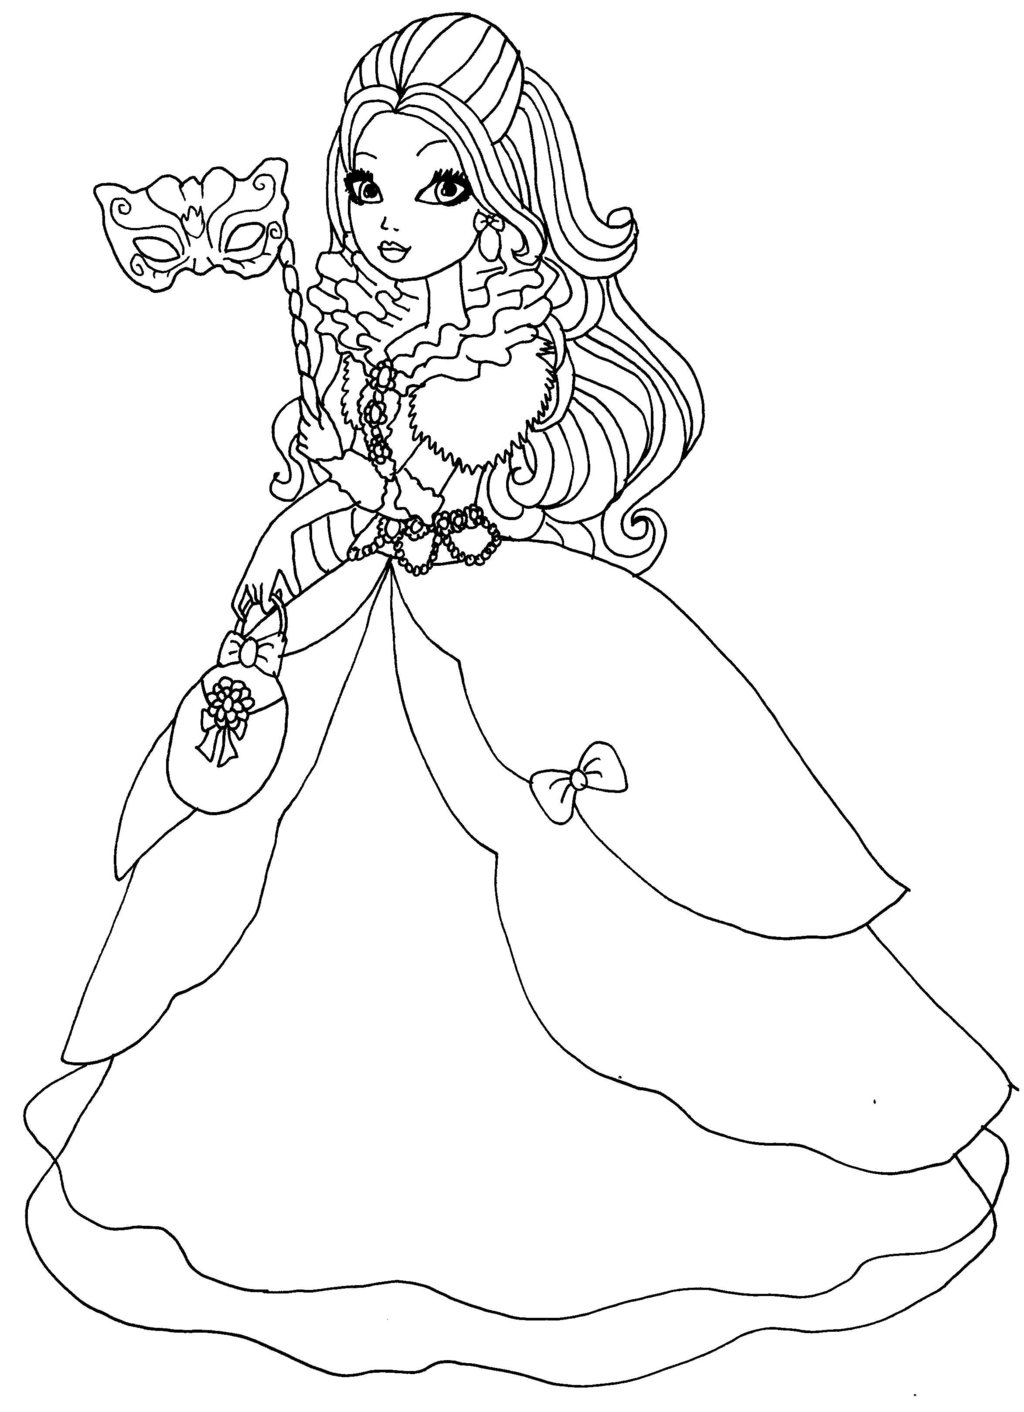 ever after high coloring pages ever after high coloring pages to download and print for free pages coloring high after ever